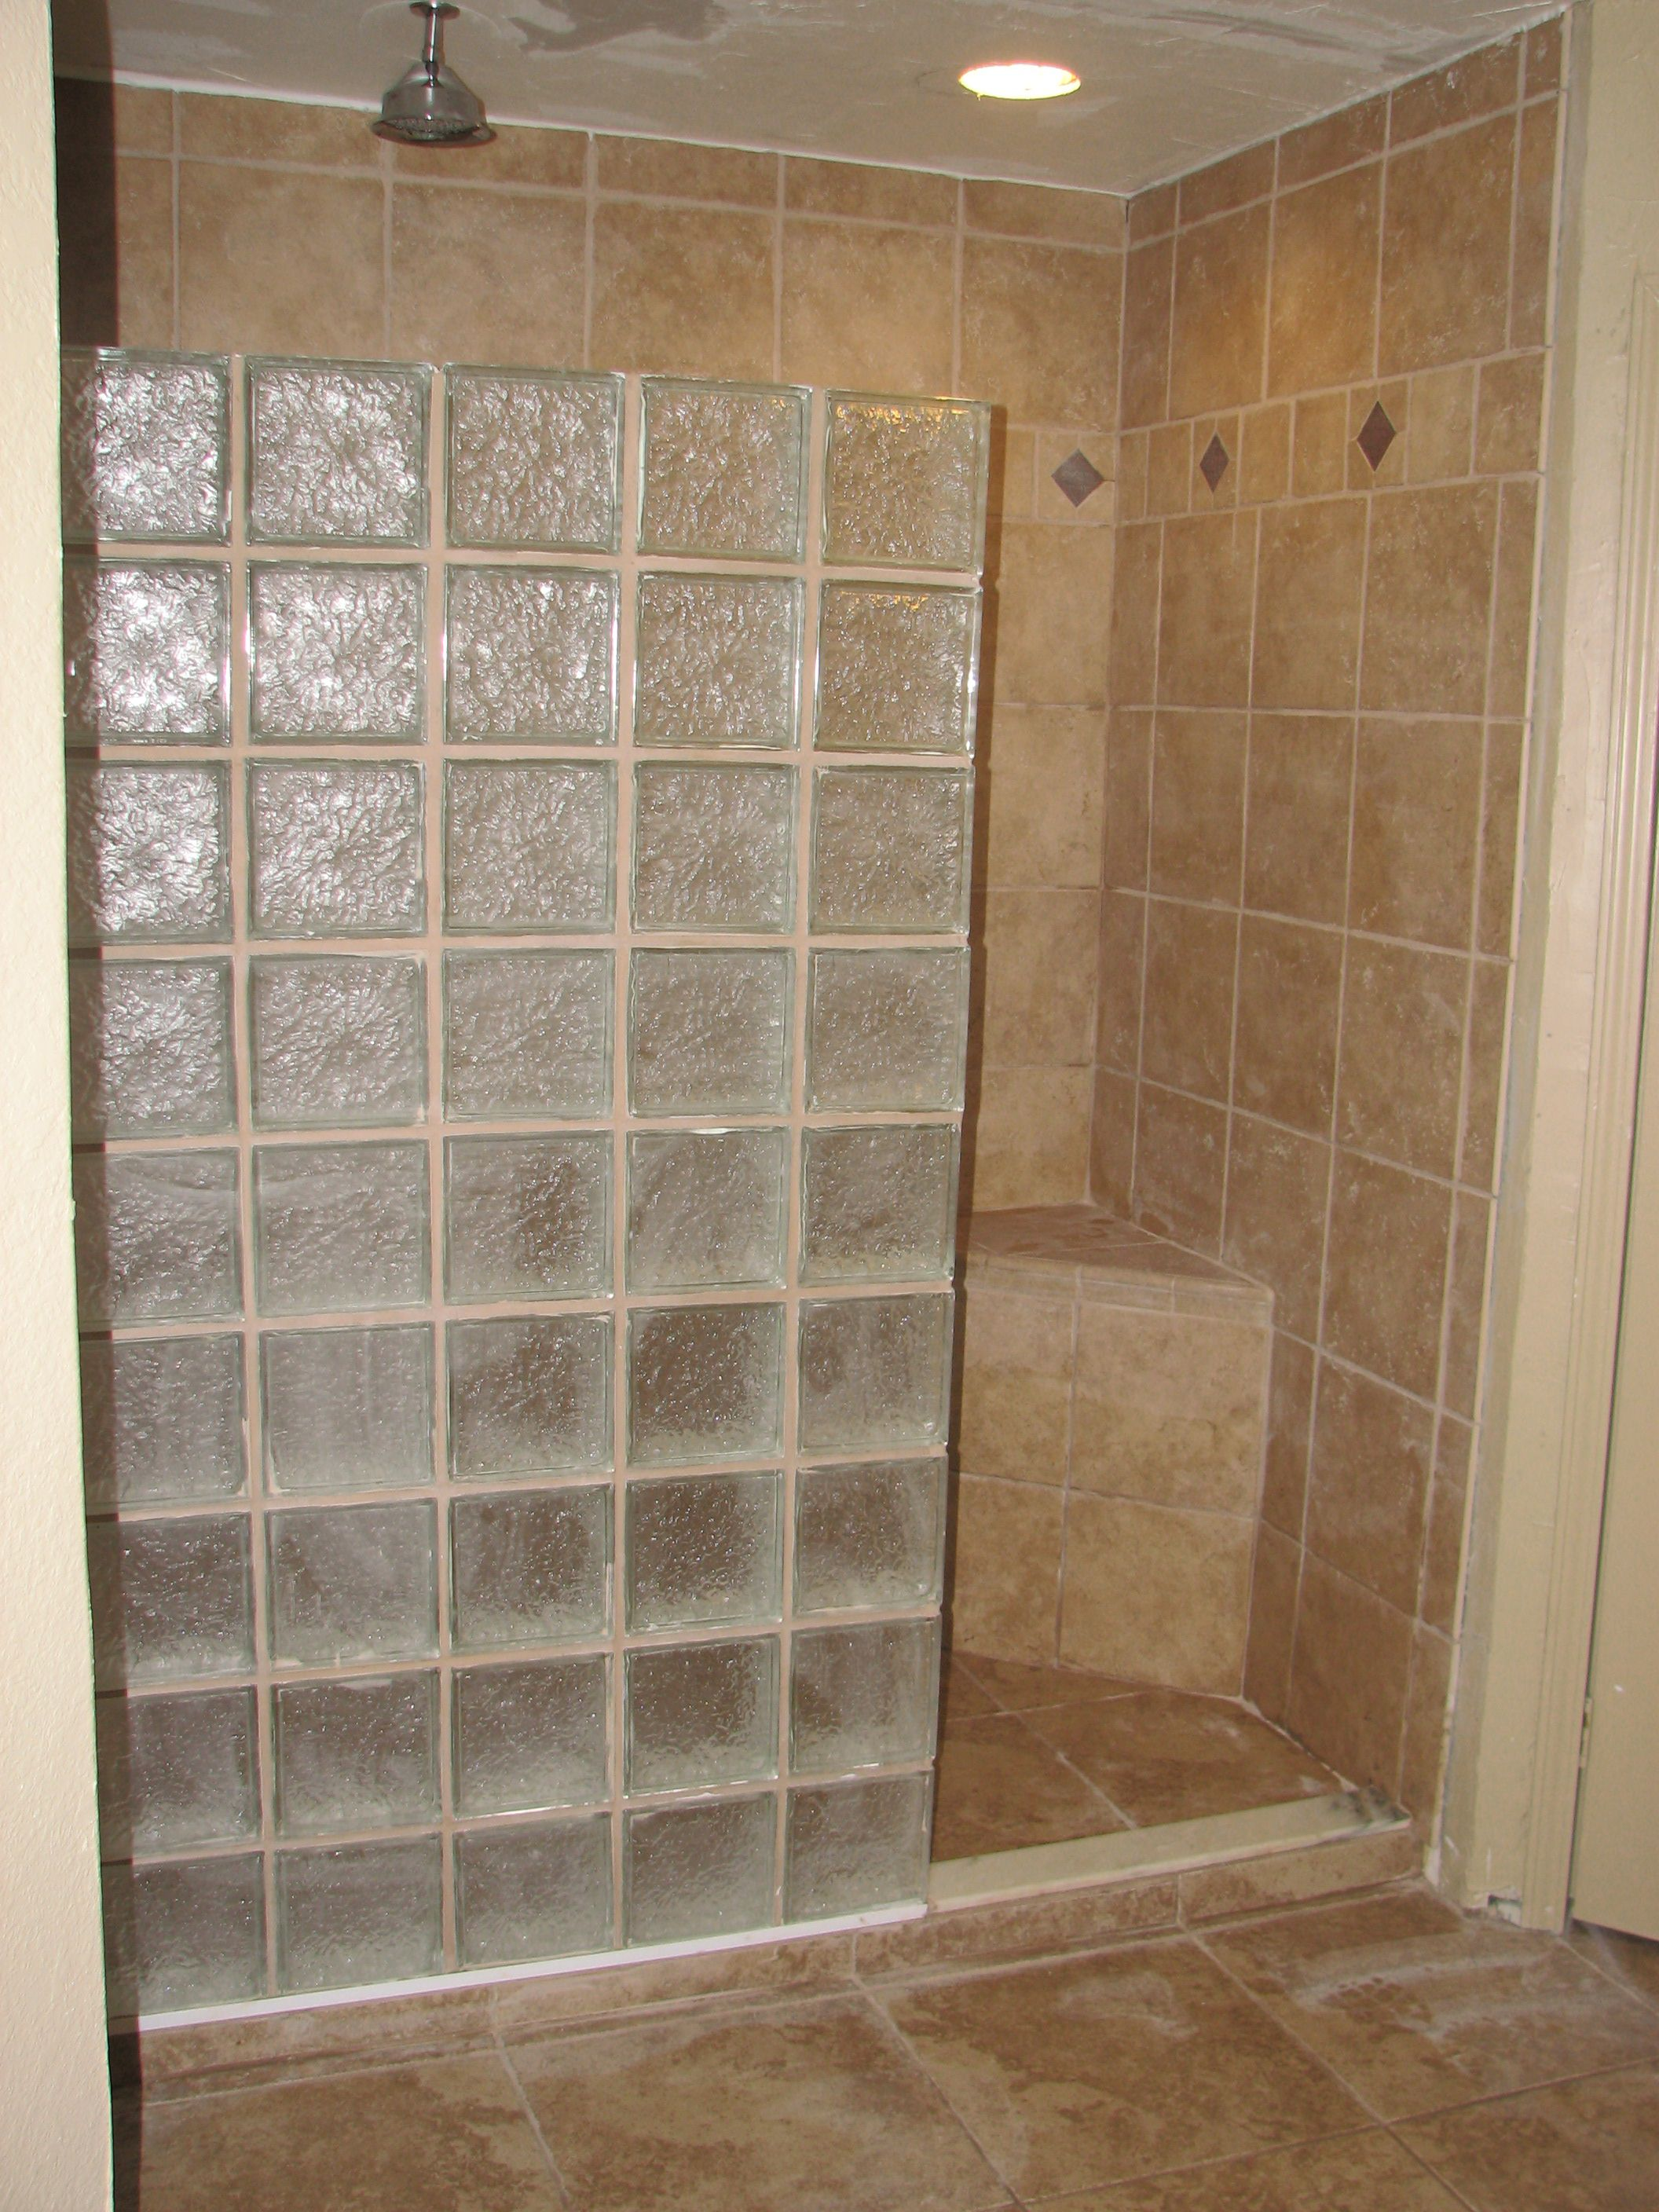 Compact Bathroom Designs Small Guest Bathroom Description From - How much does it cost to redo a bathroom for small bathroom ideas